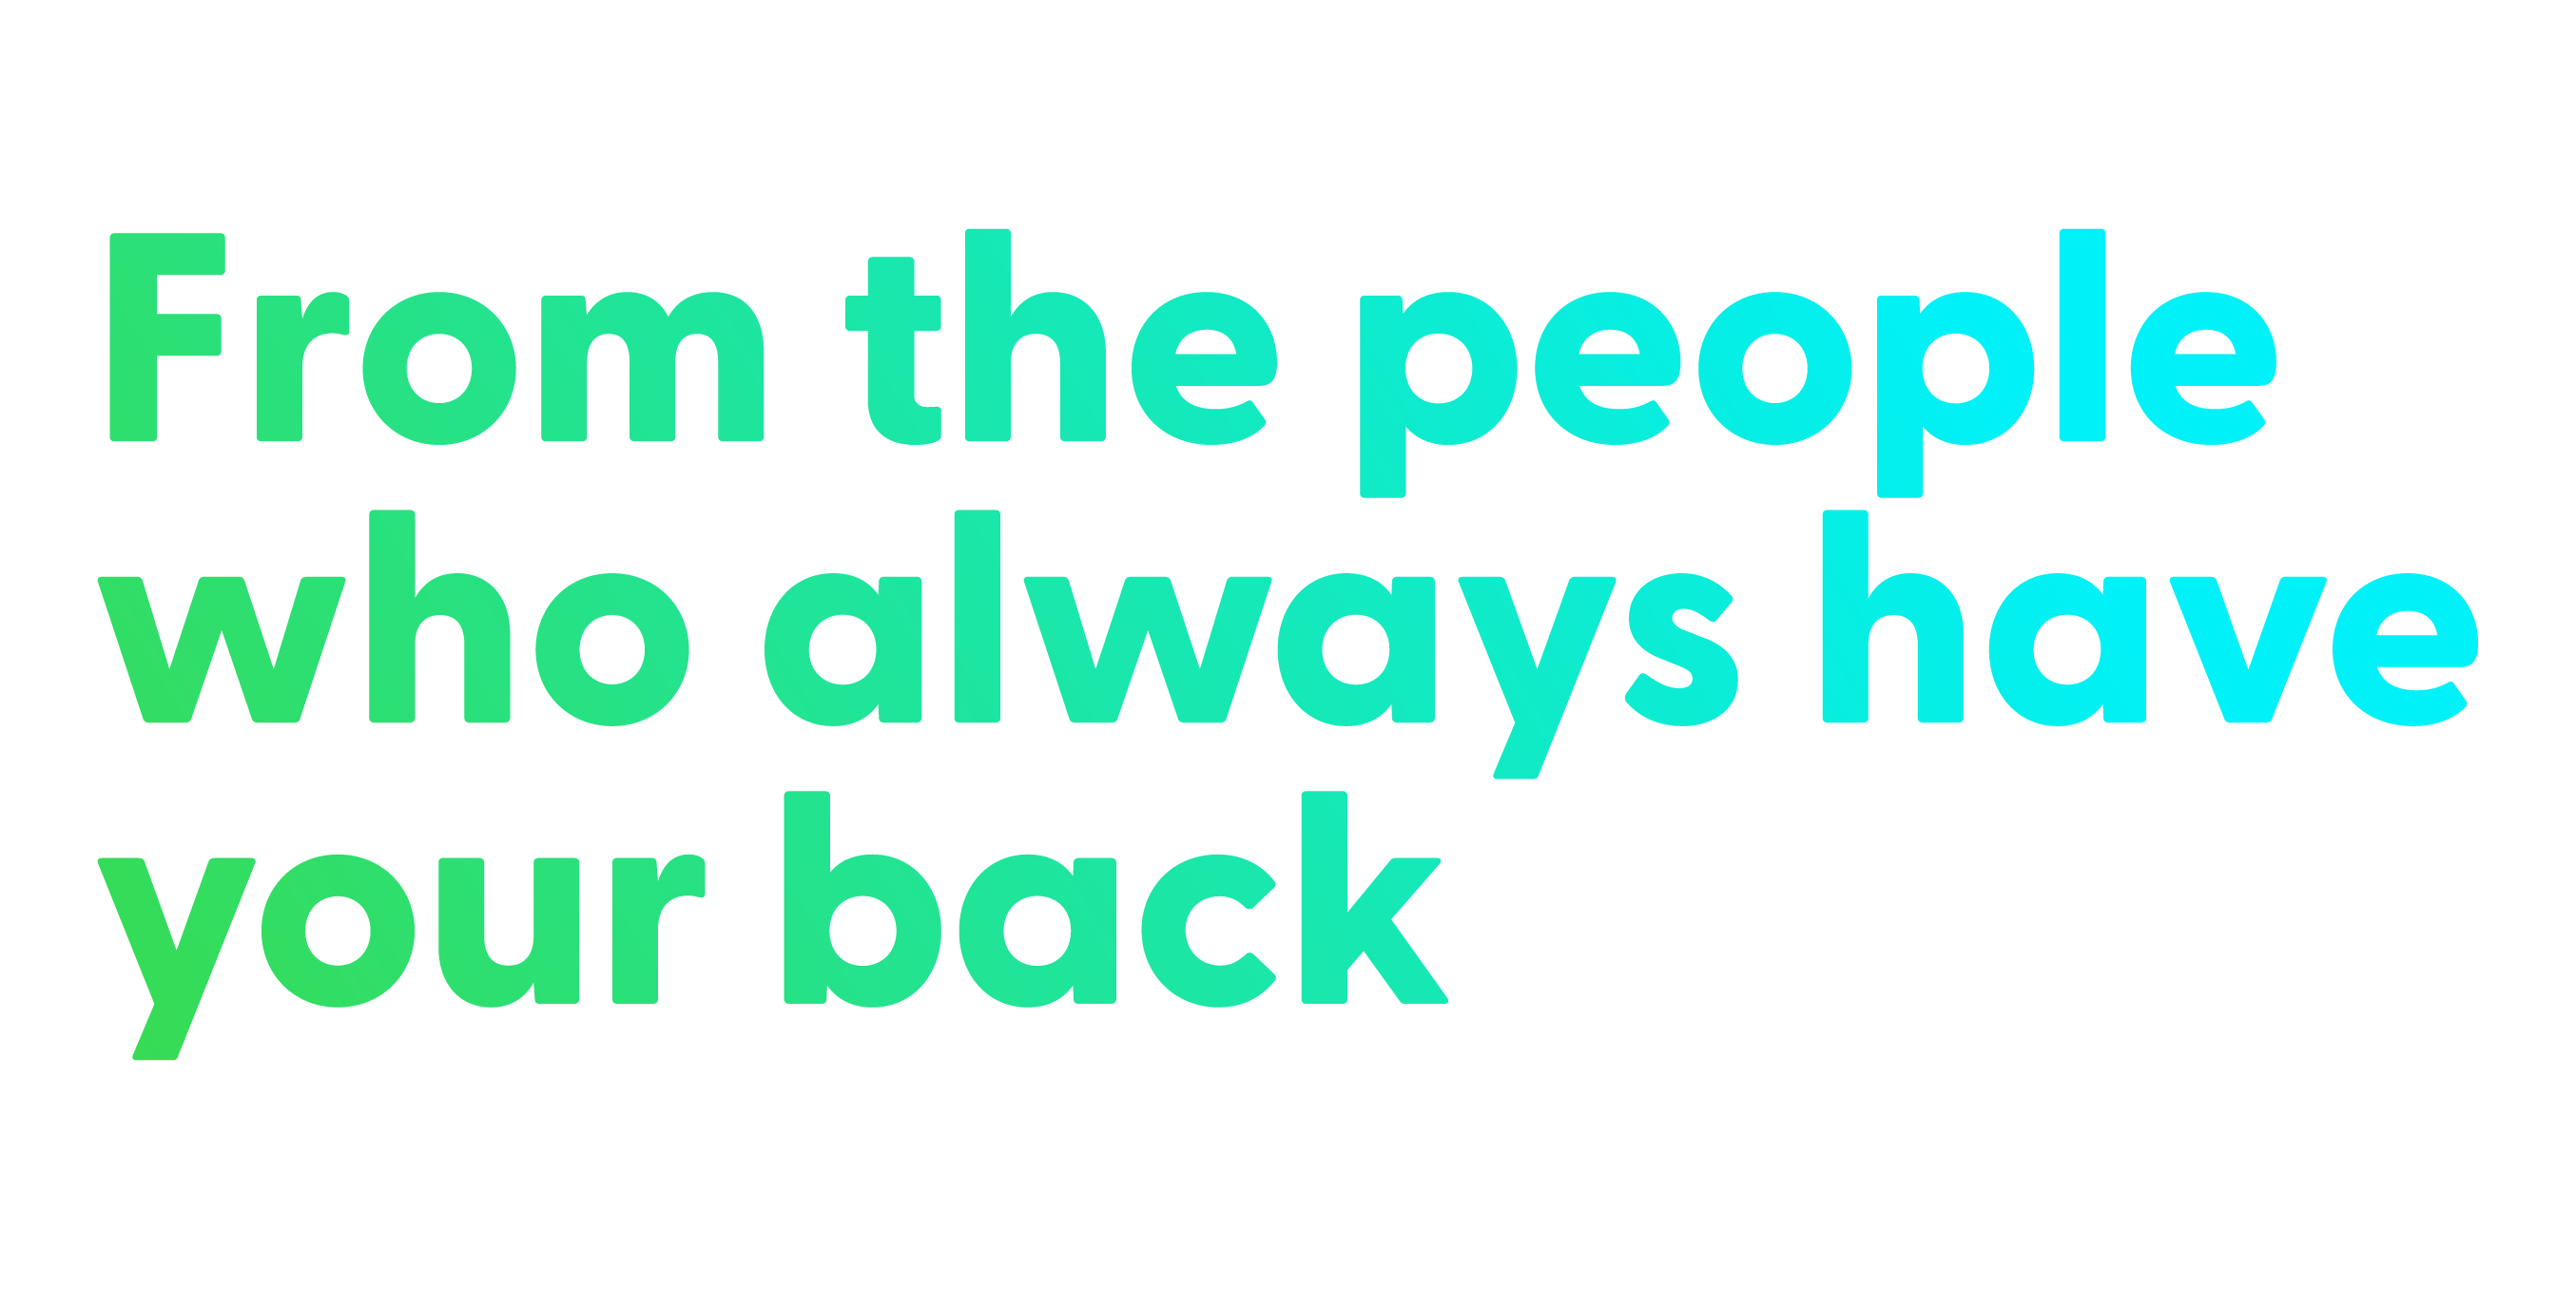 From the people who always have your back